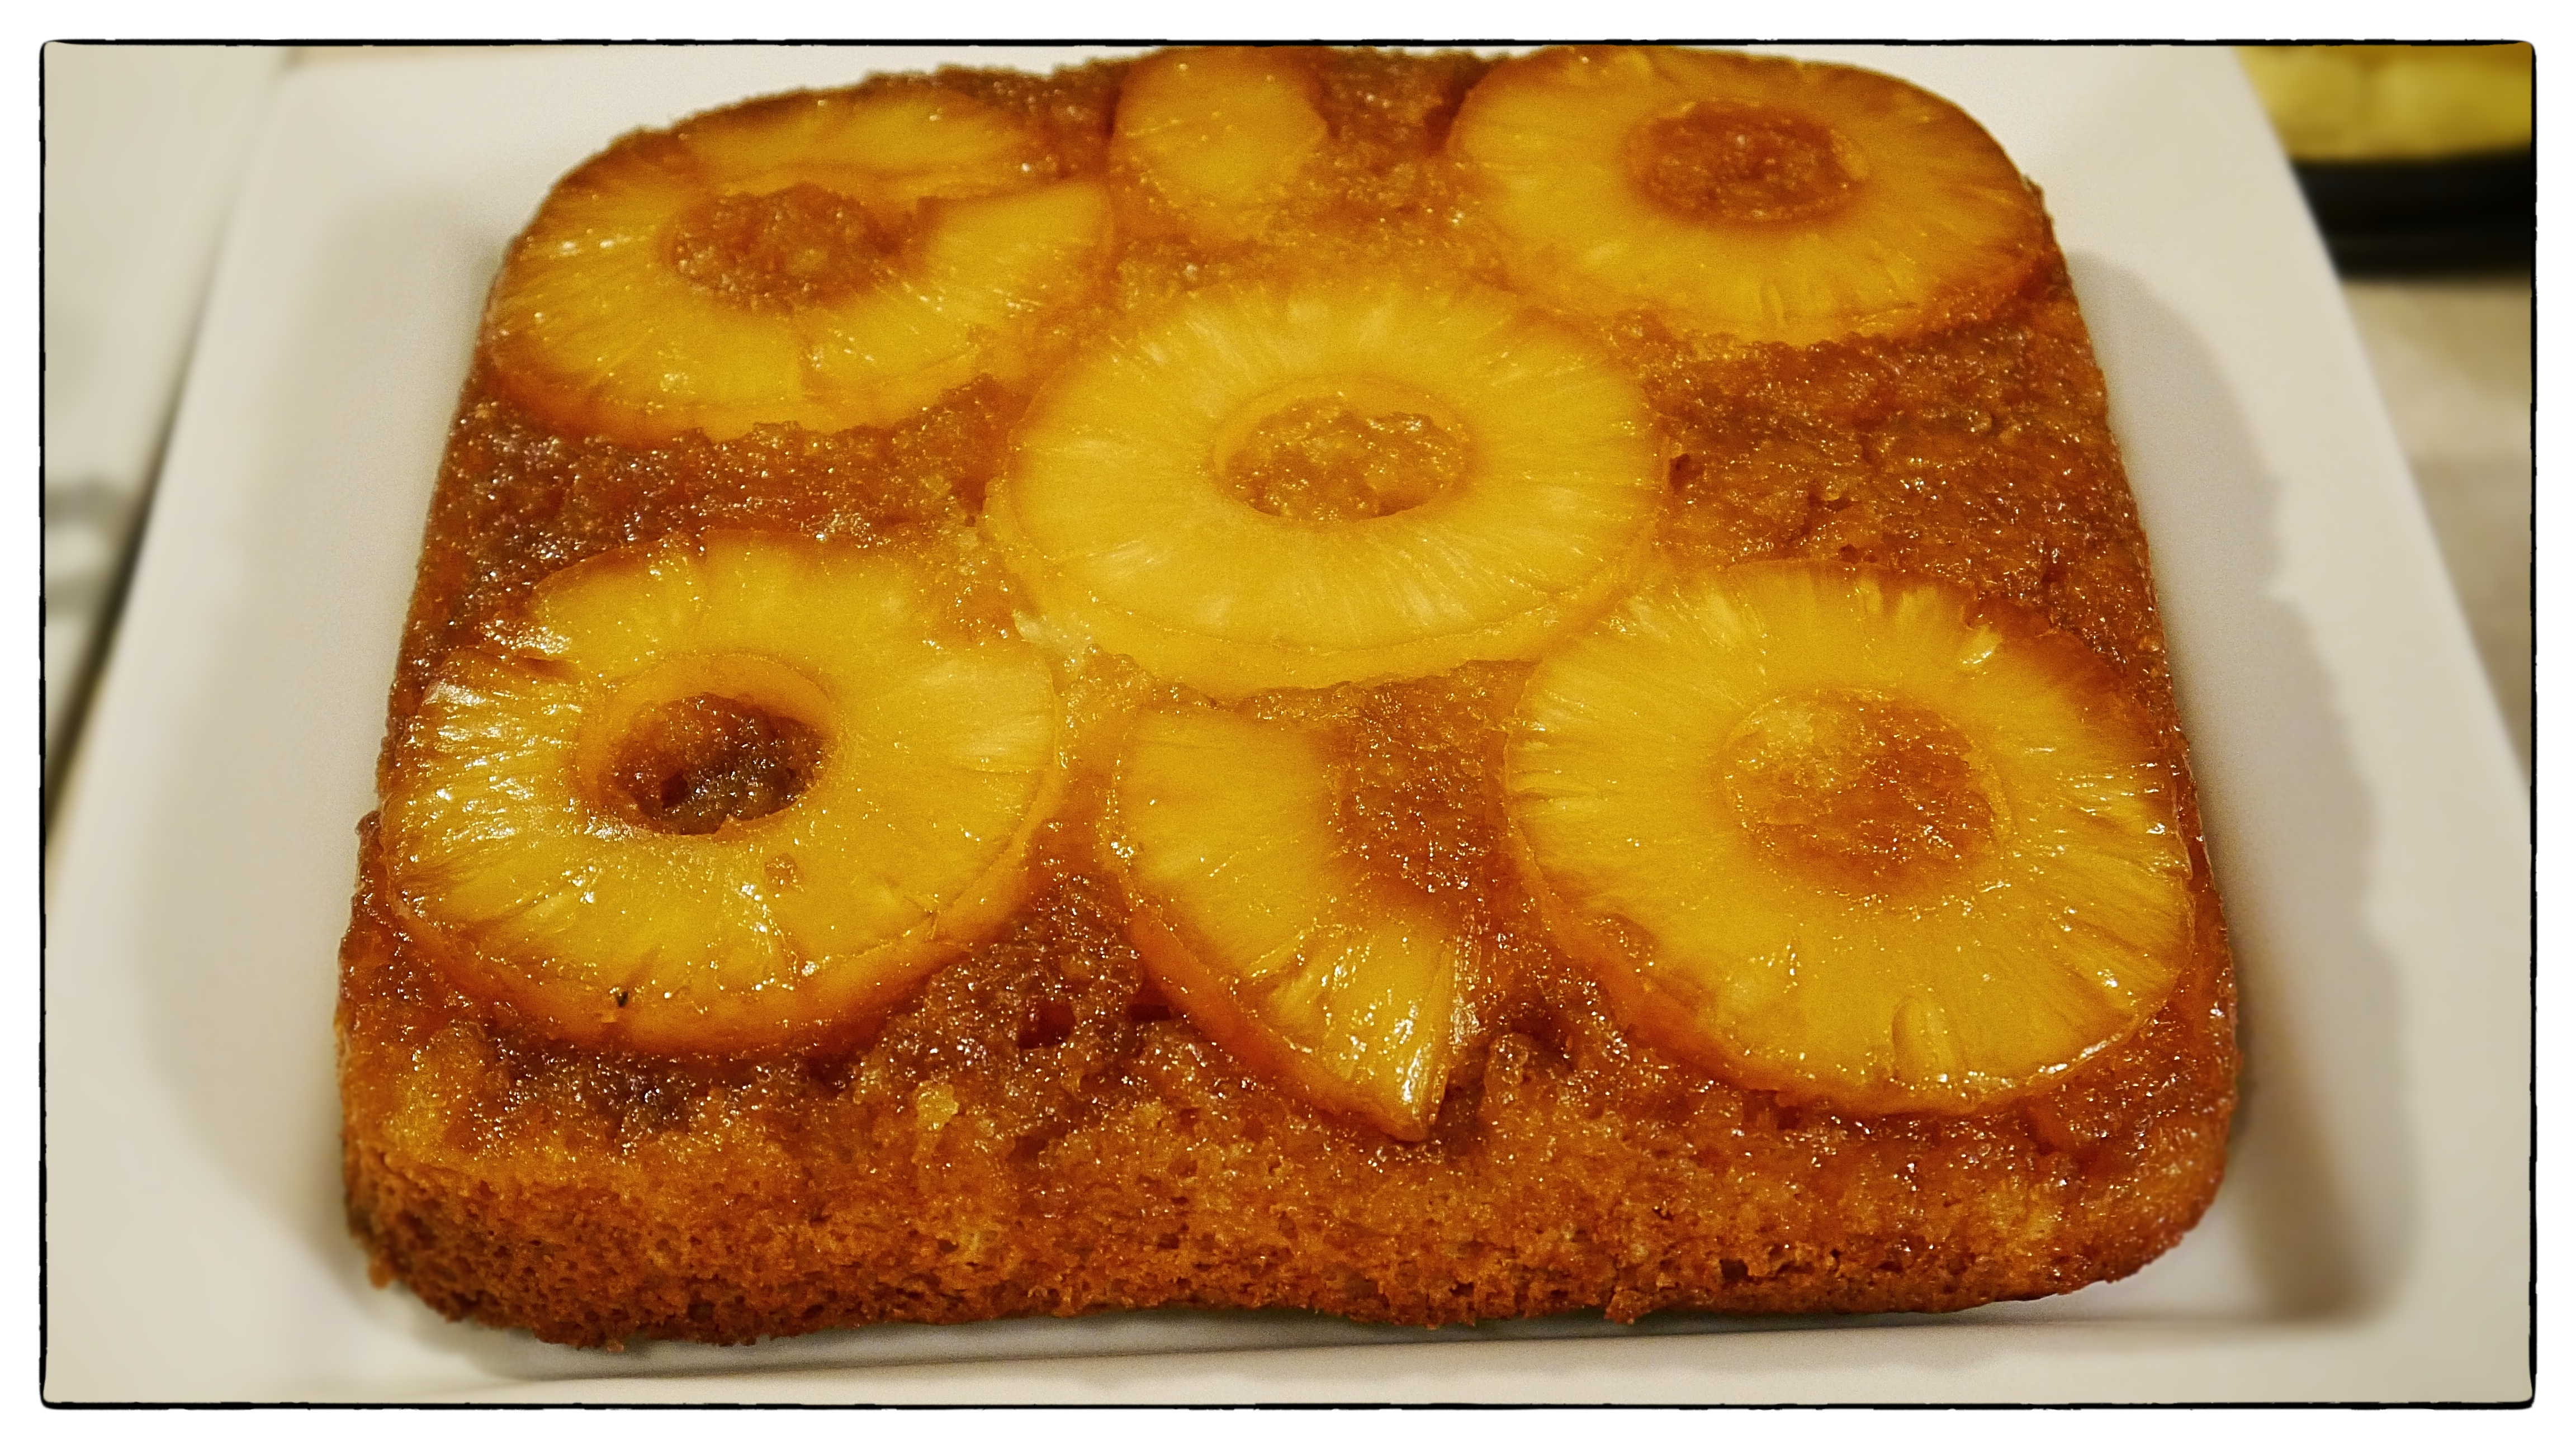 Another Pineapple Upside Down Cake | What's 4 Dinner Solutions